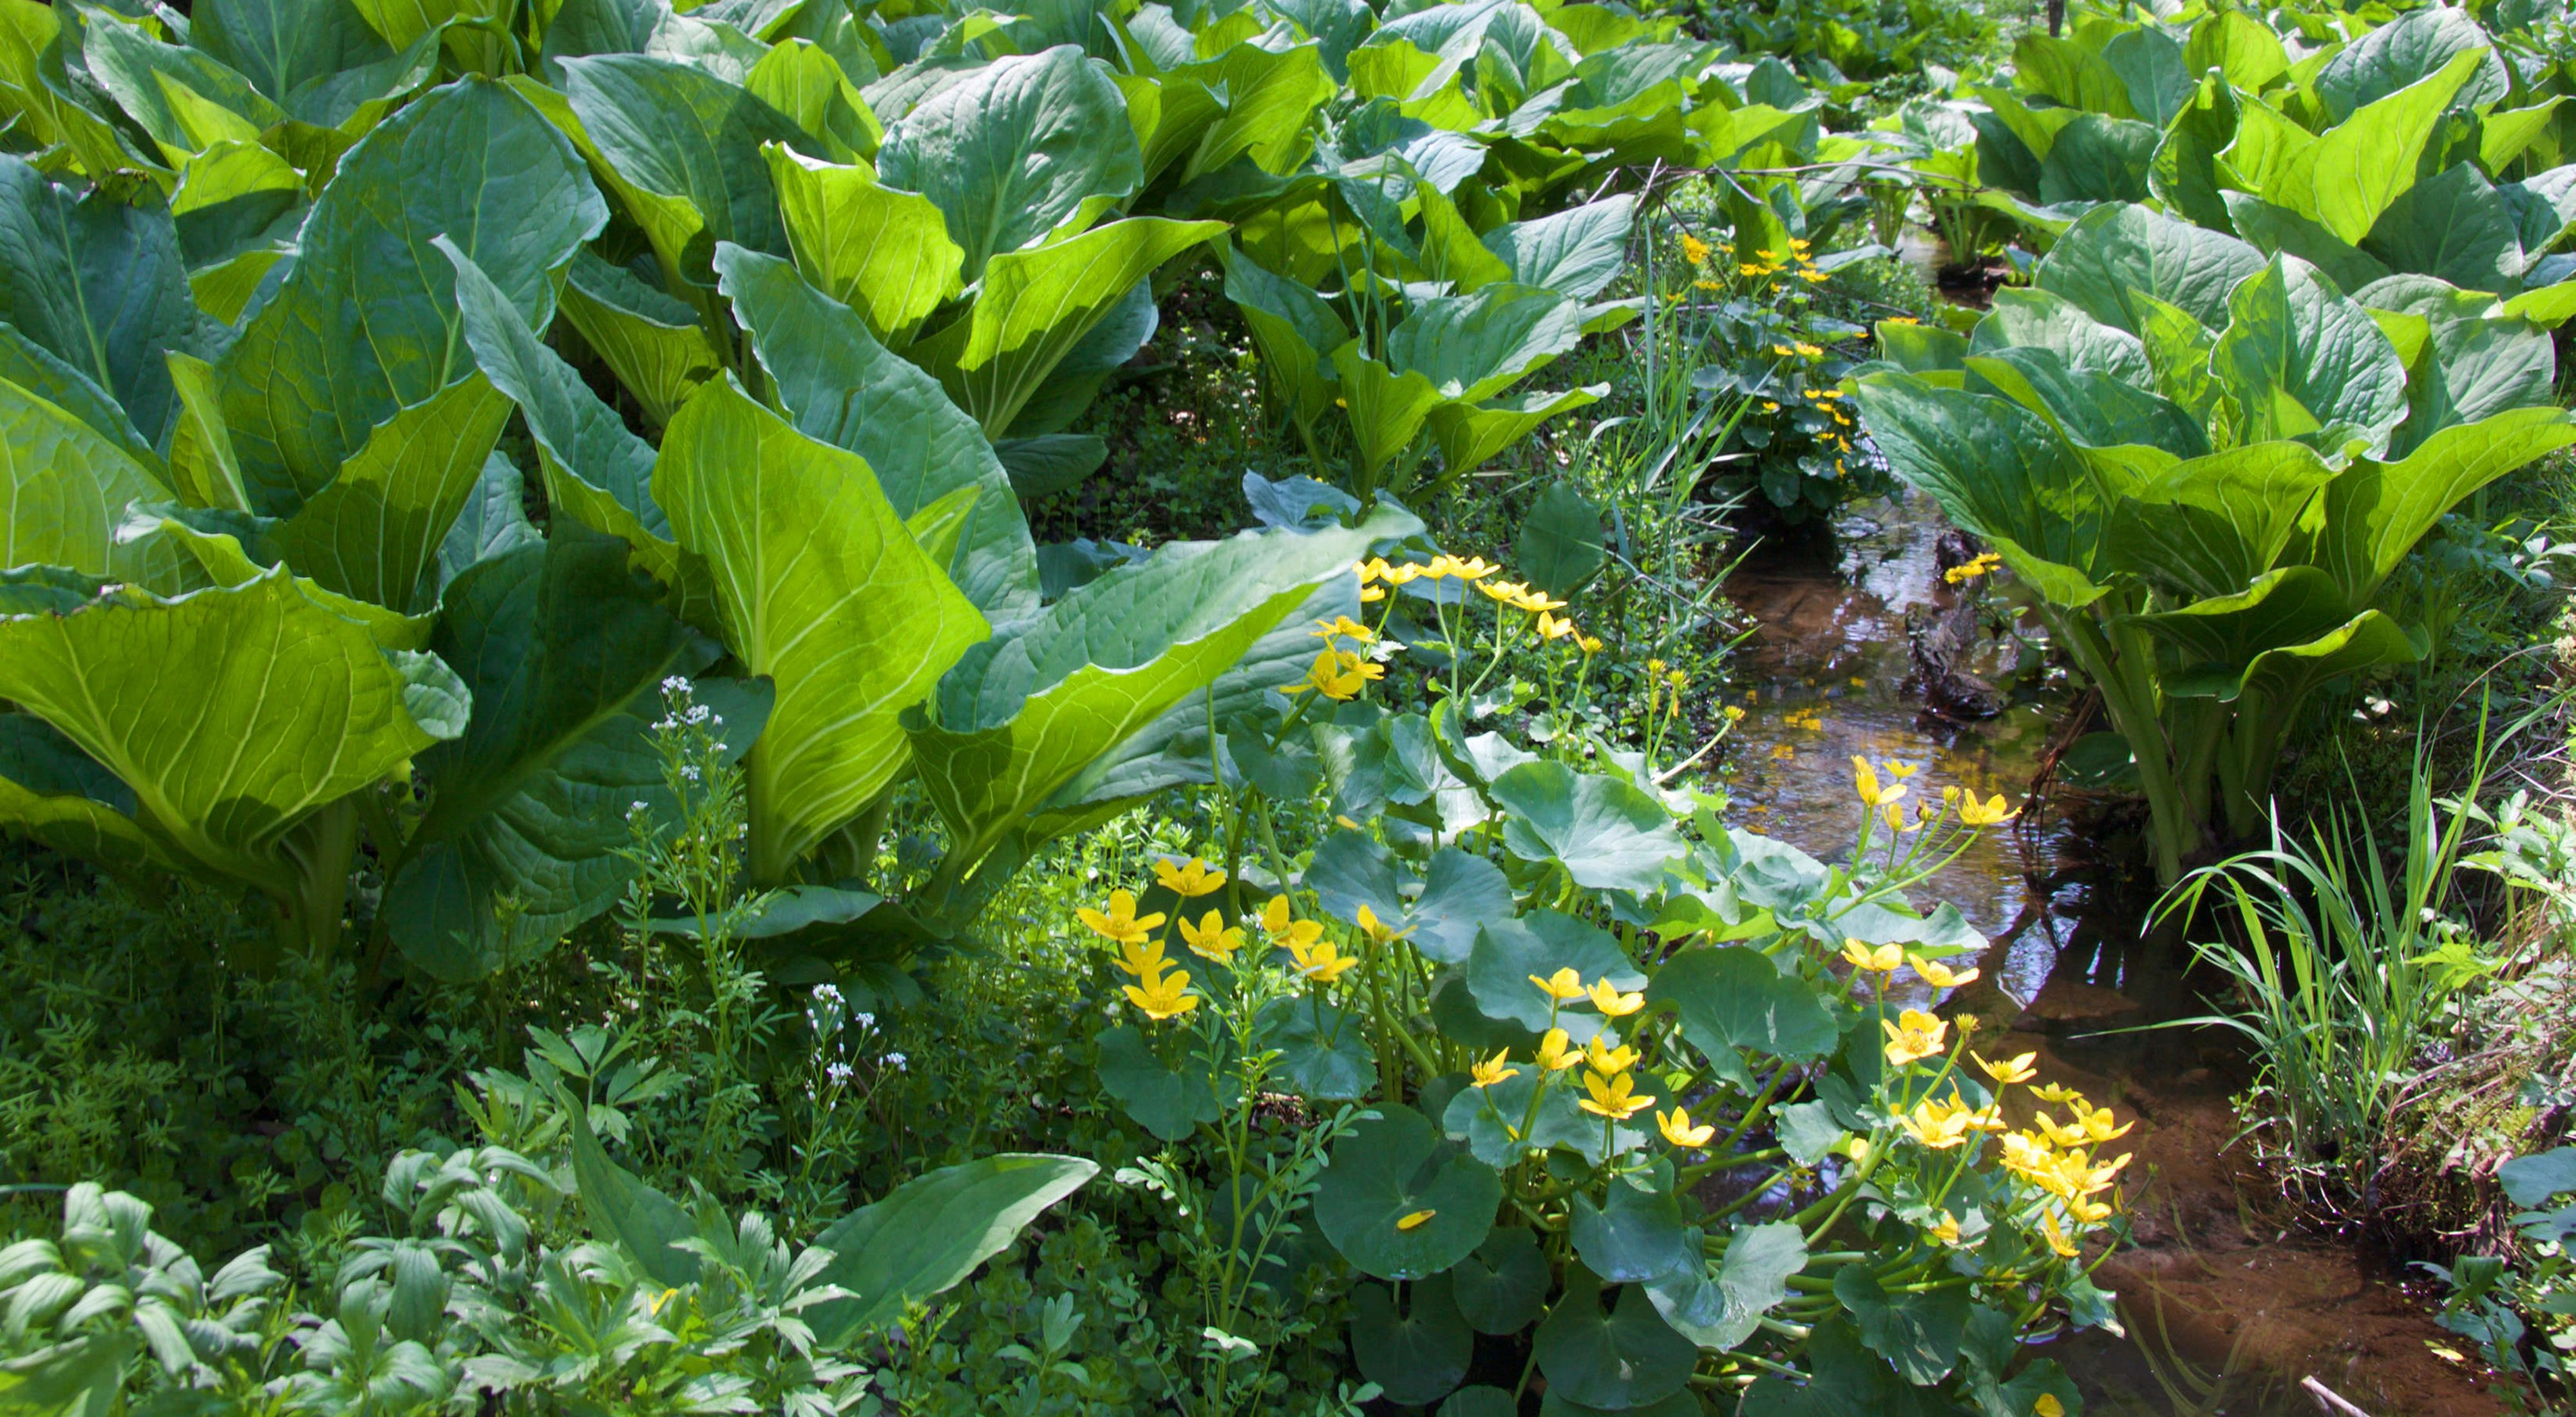 Close-up photo of wetland in Honey Creek Valley with yellow marsh marigolds in bloom and a profusion of skunk cabbage